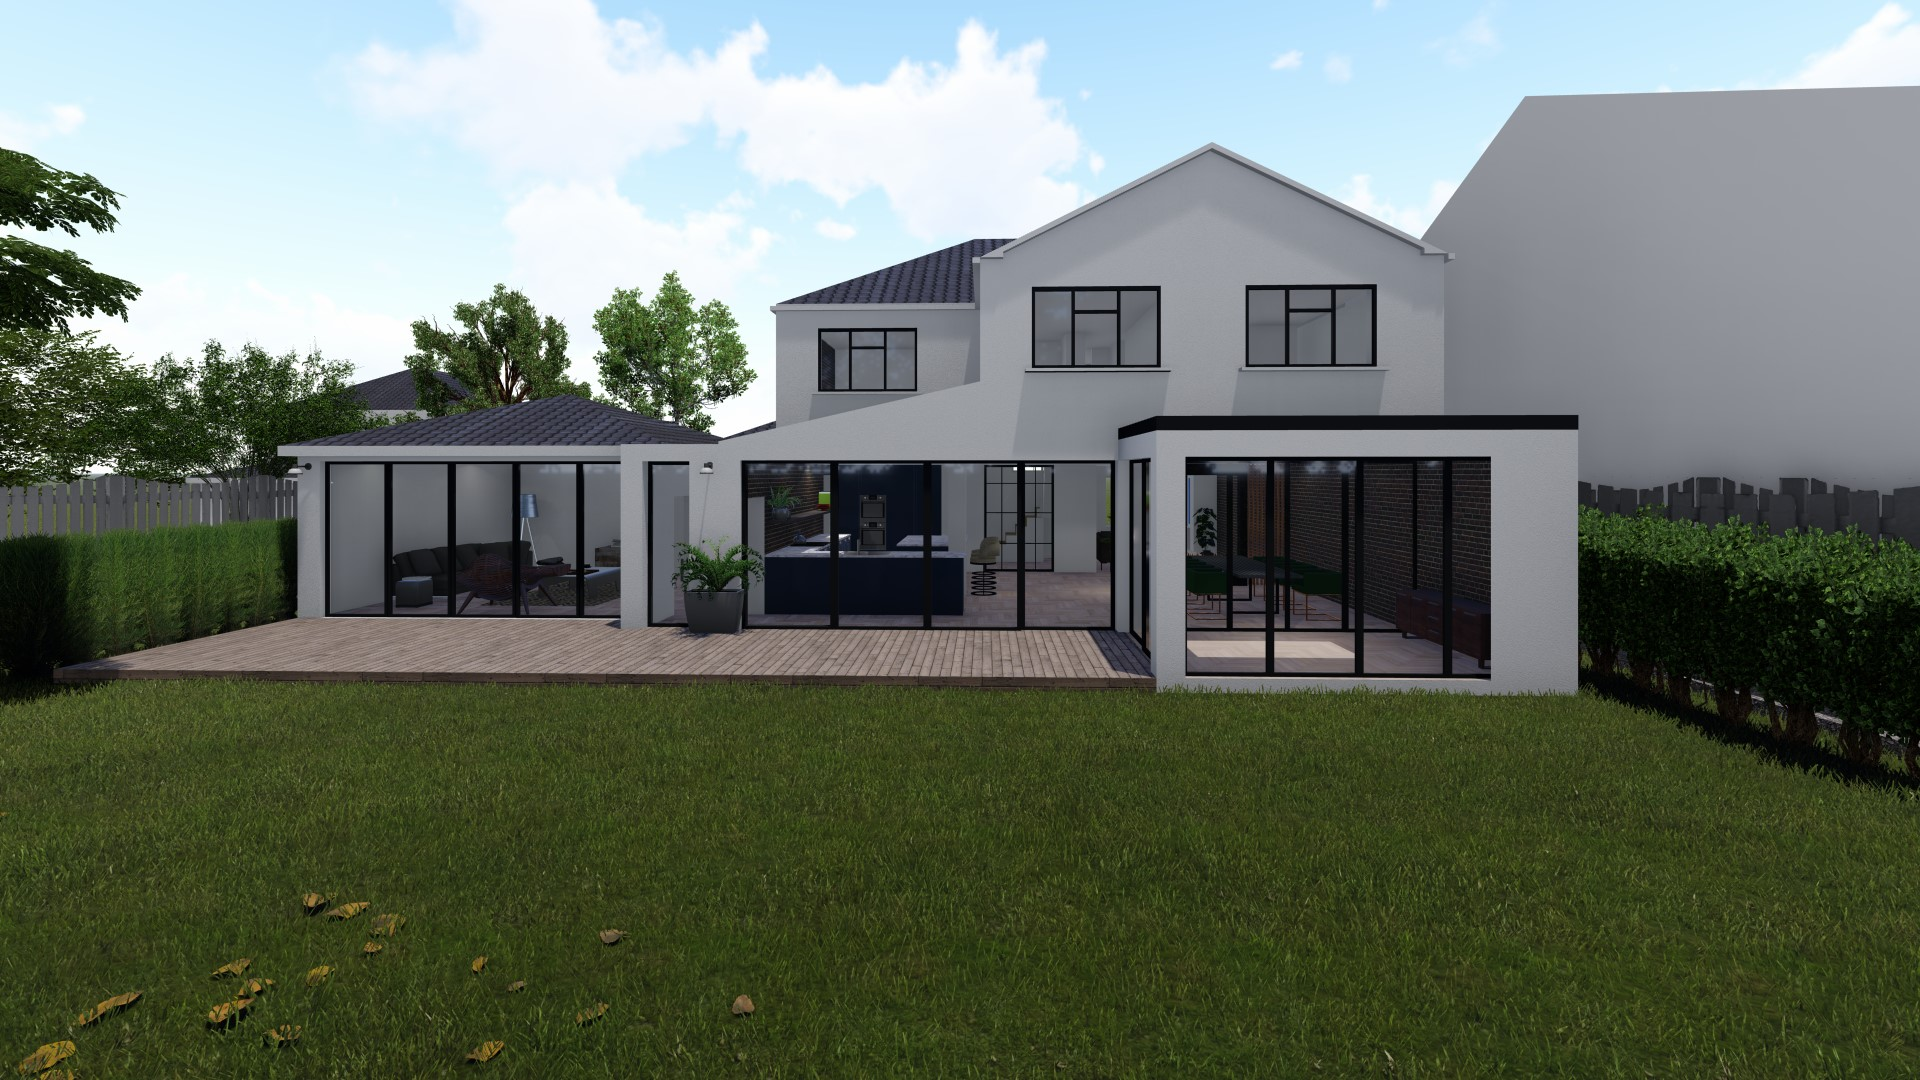 rear view of house extension model with patio